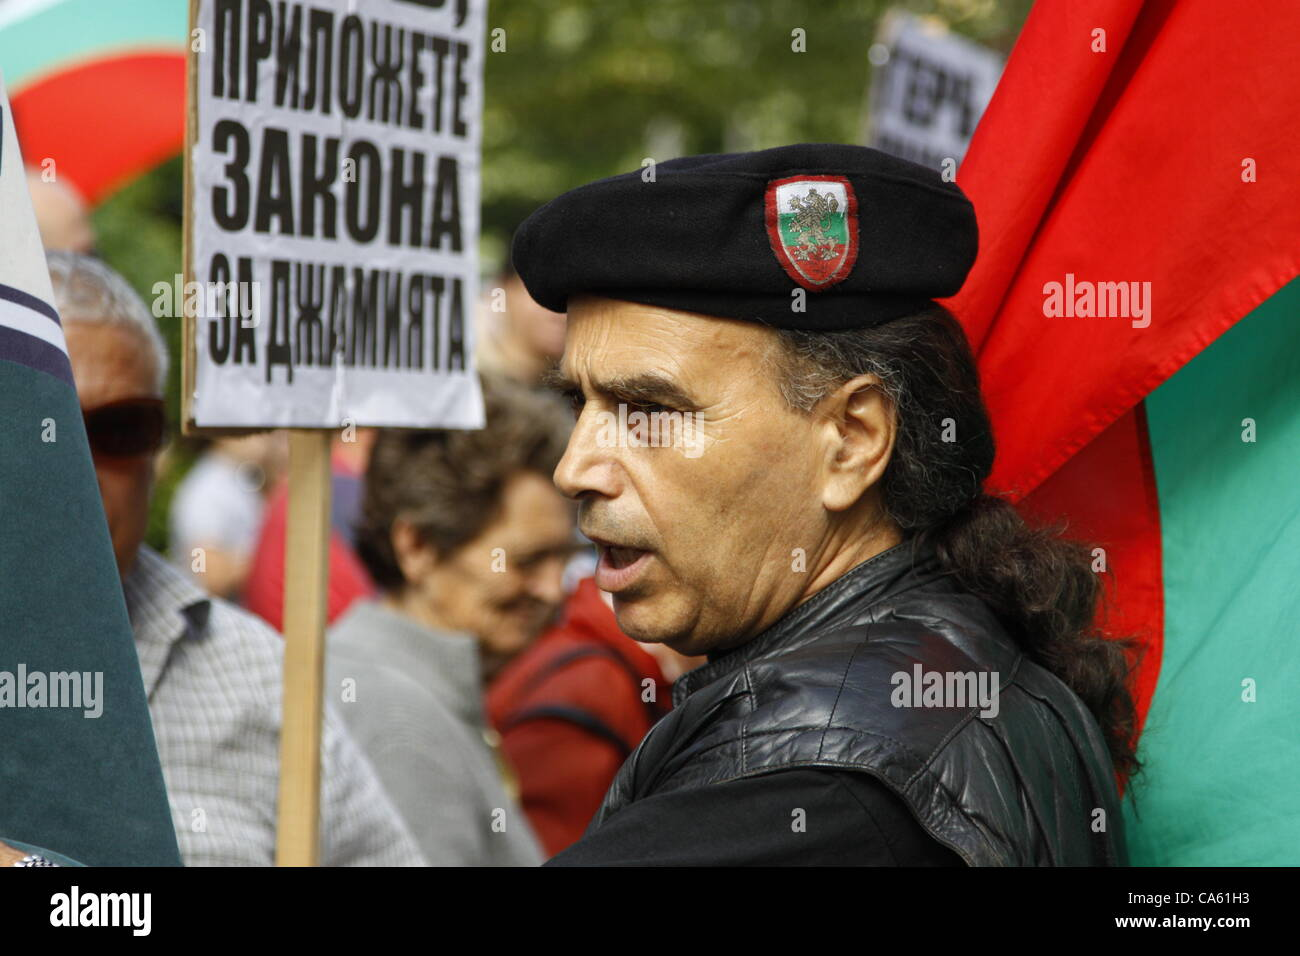 Member of the Bulgarian ultra-nationalist party ATAKA (Attack) in his 'party uniform'. The hard core of - Stock Image